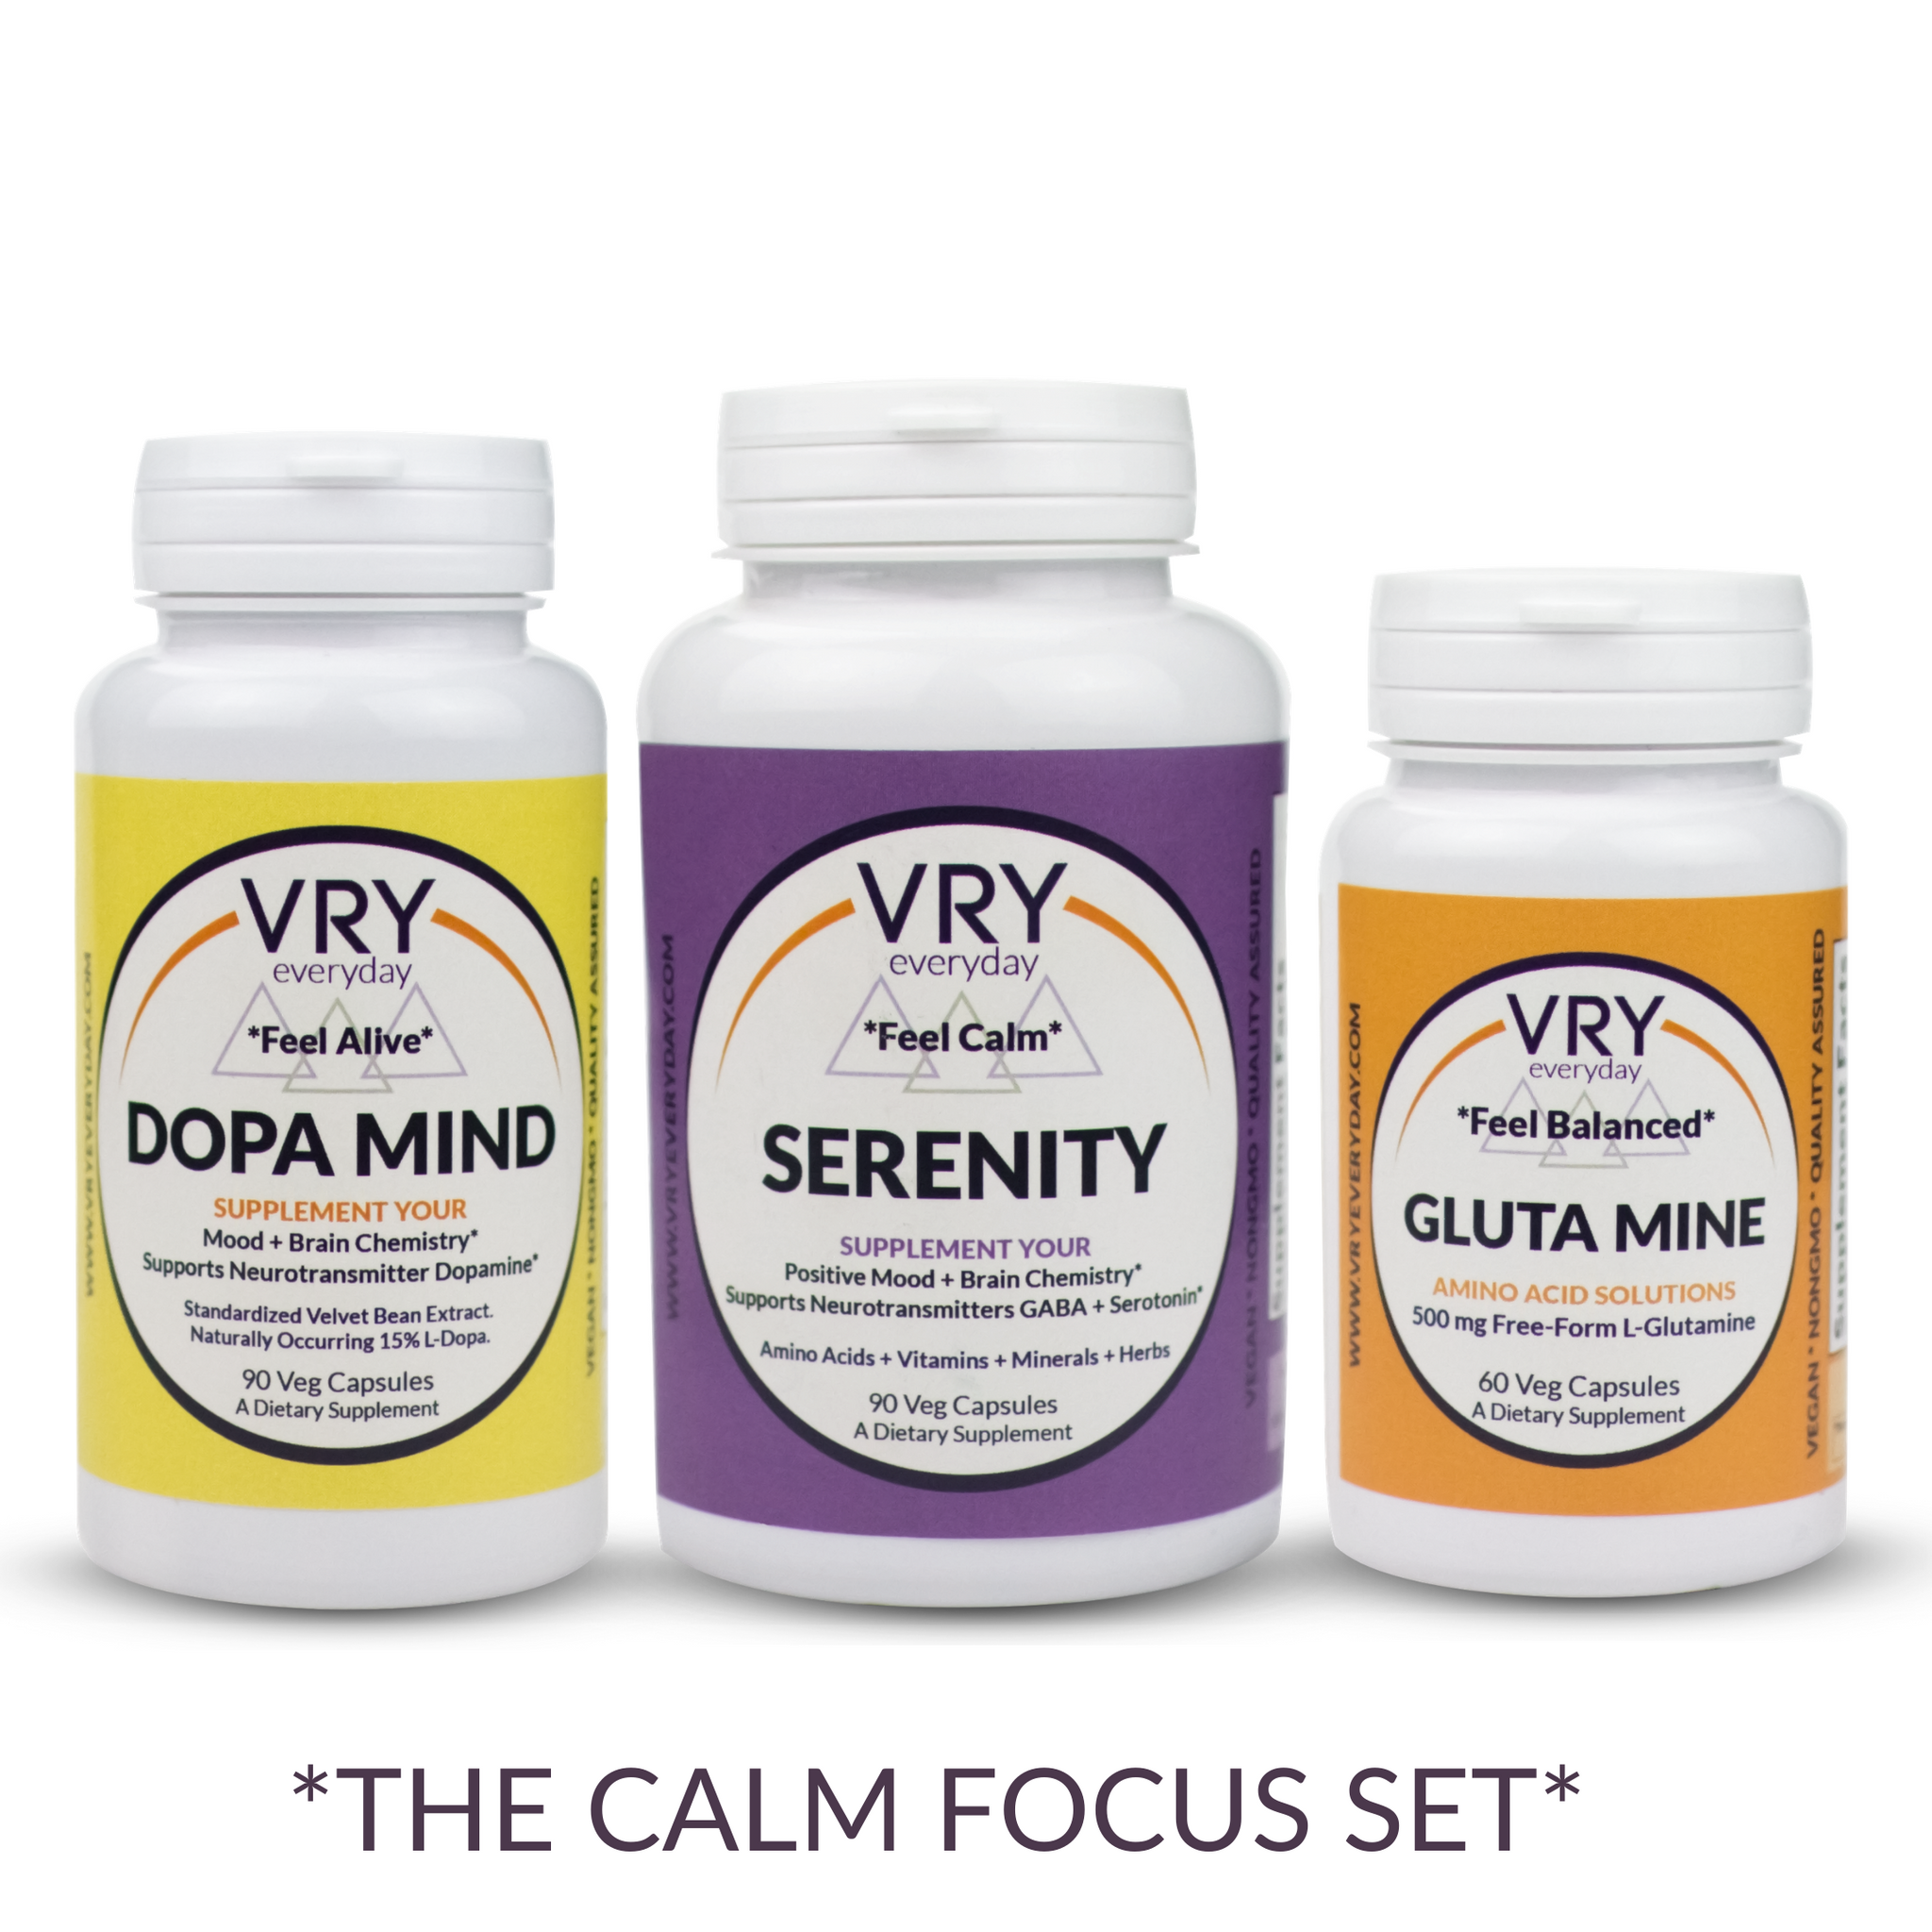 VRY MOOD BALANCE SUPPLEMENTS CALM FOCUS SET